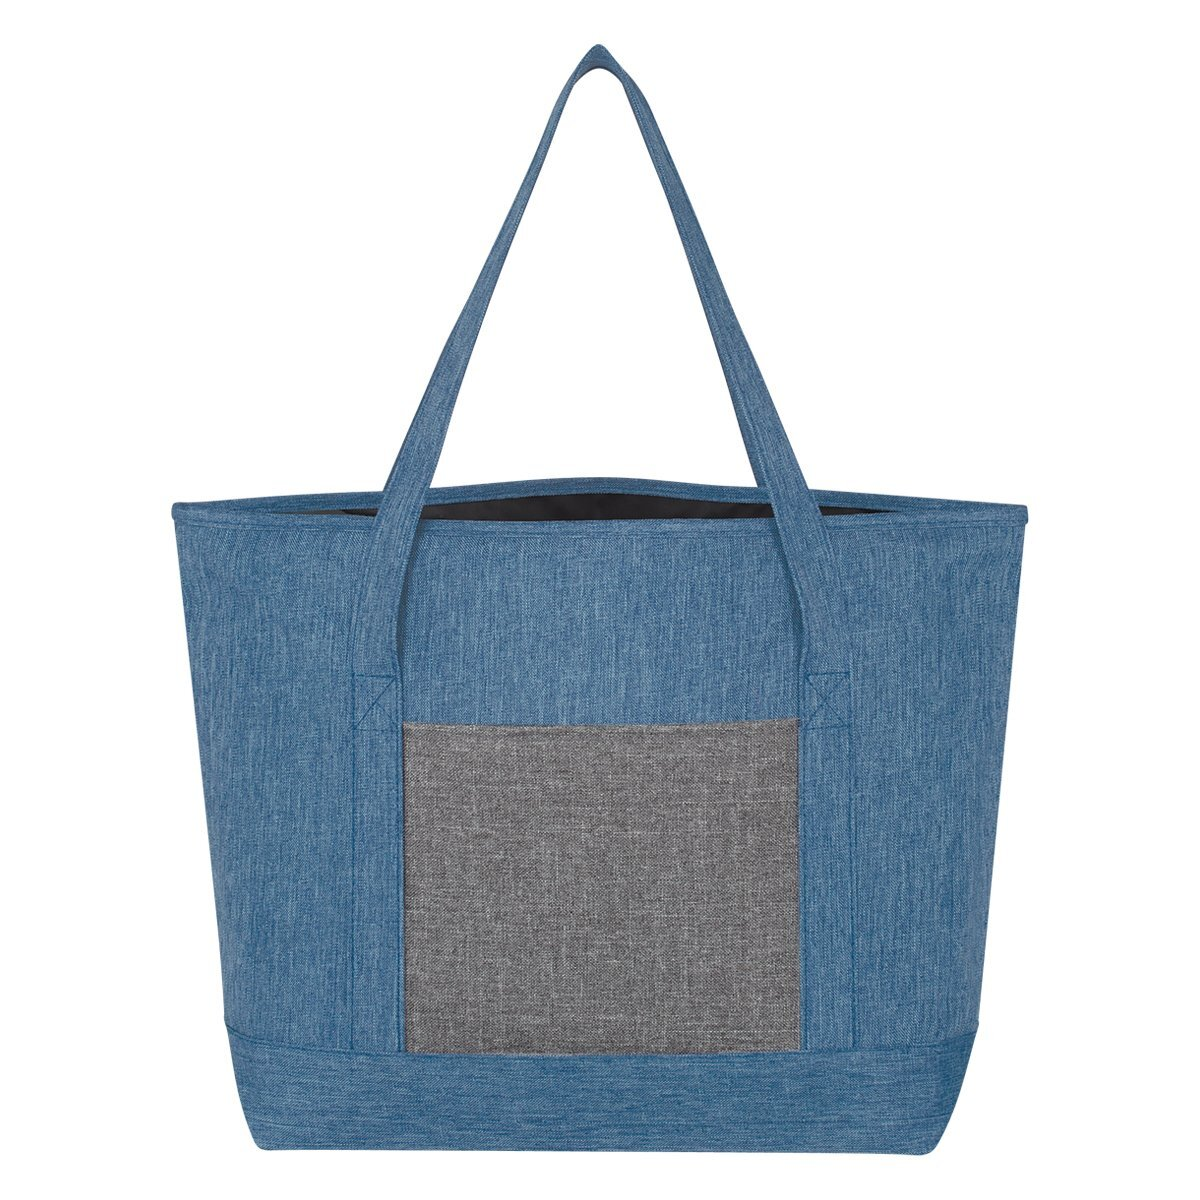 Denim-Effect 600D Tote - Free Set Up Charges!